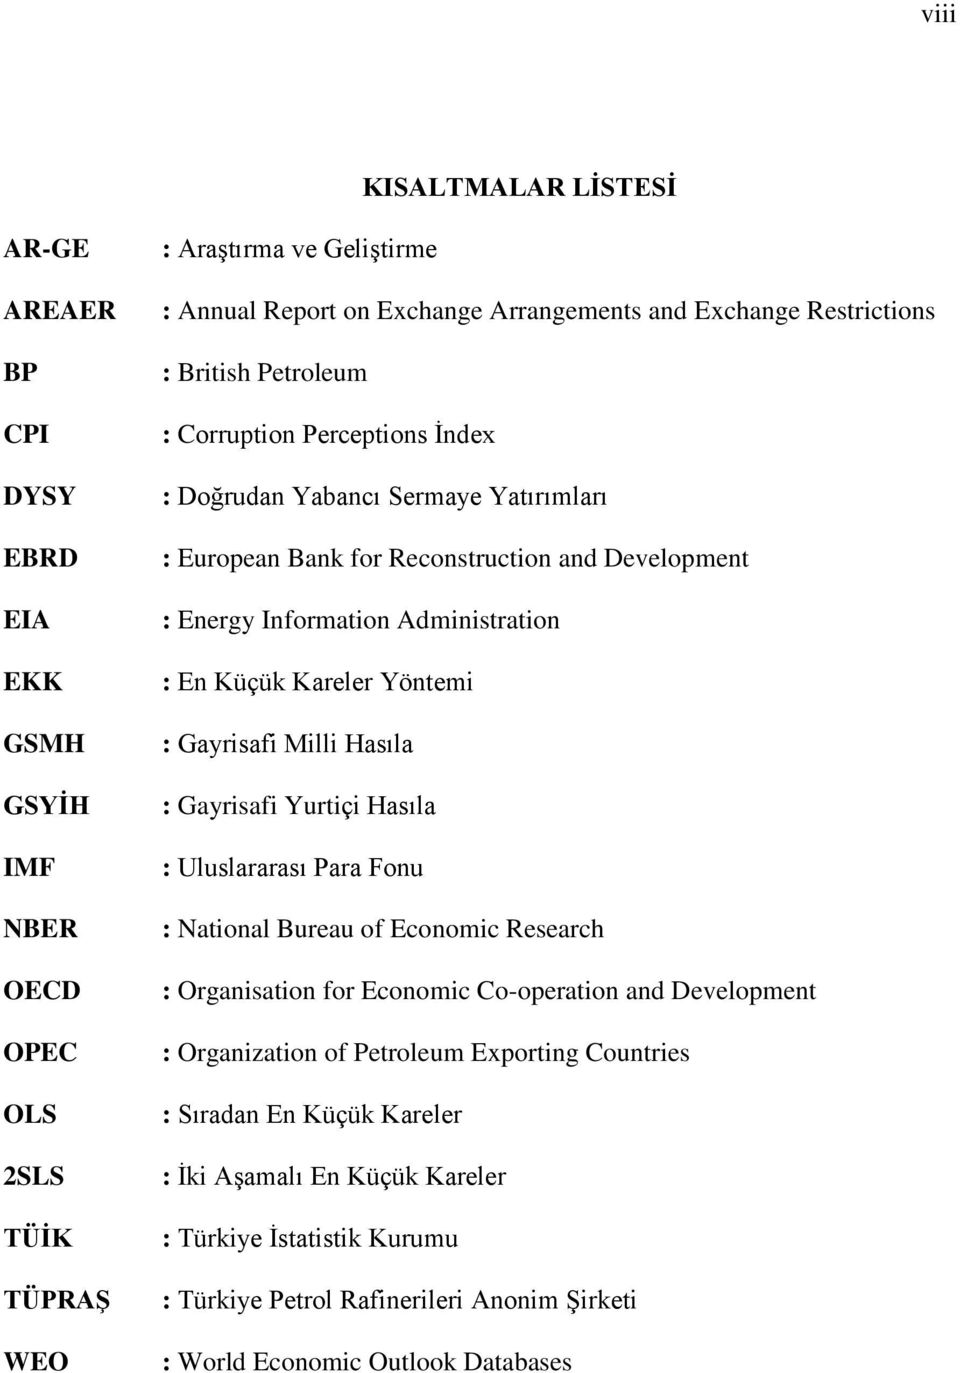 Küçük Kareler Yöntemi : Gayrisafi Milli Hasıla : Gayrisafi Yurtiçi Hasıla : Uluslararası Para Fonu : National Bureau of Economic Research : Organisation for Economic Co-operation and Development :